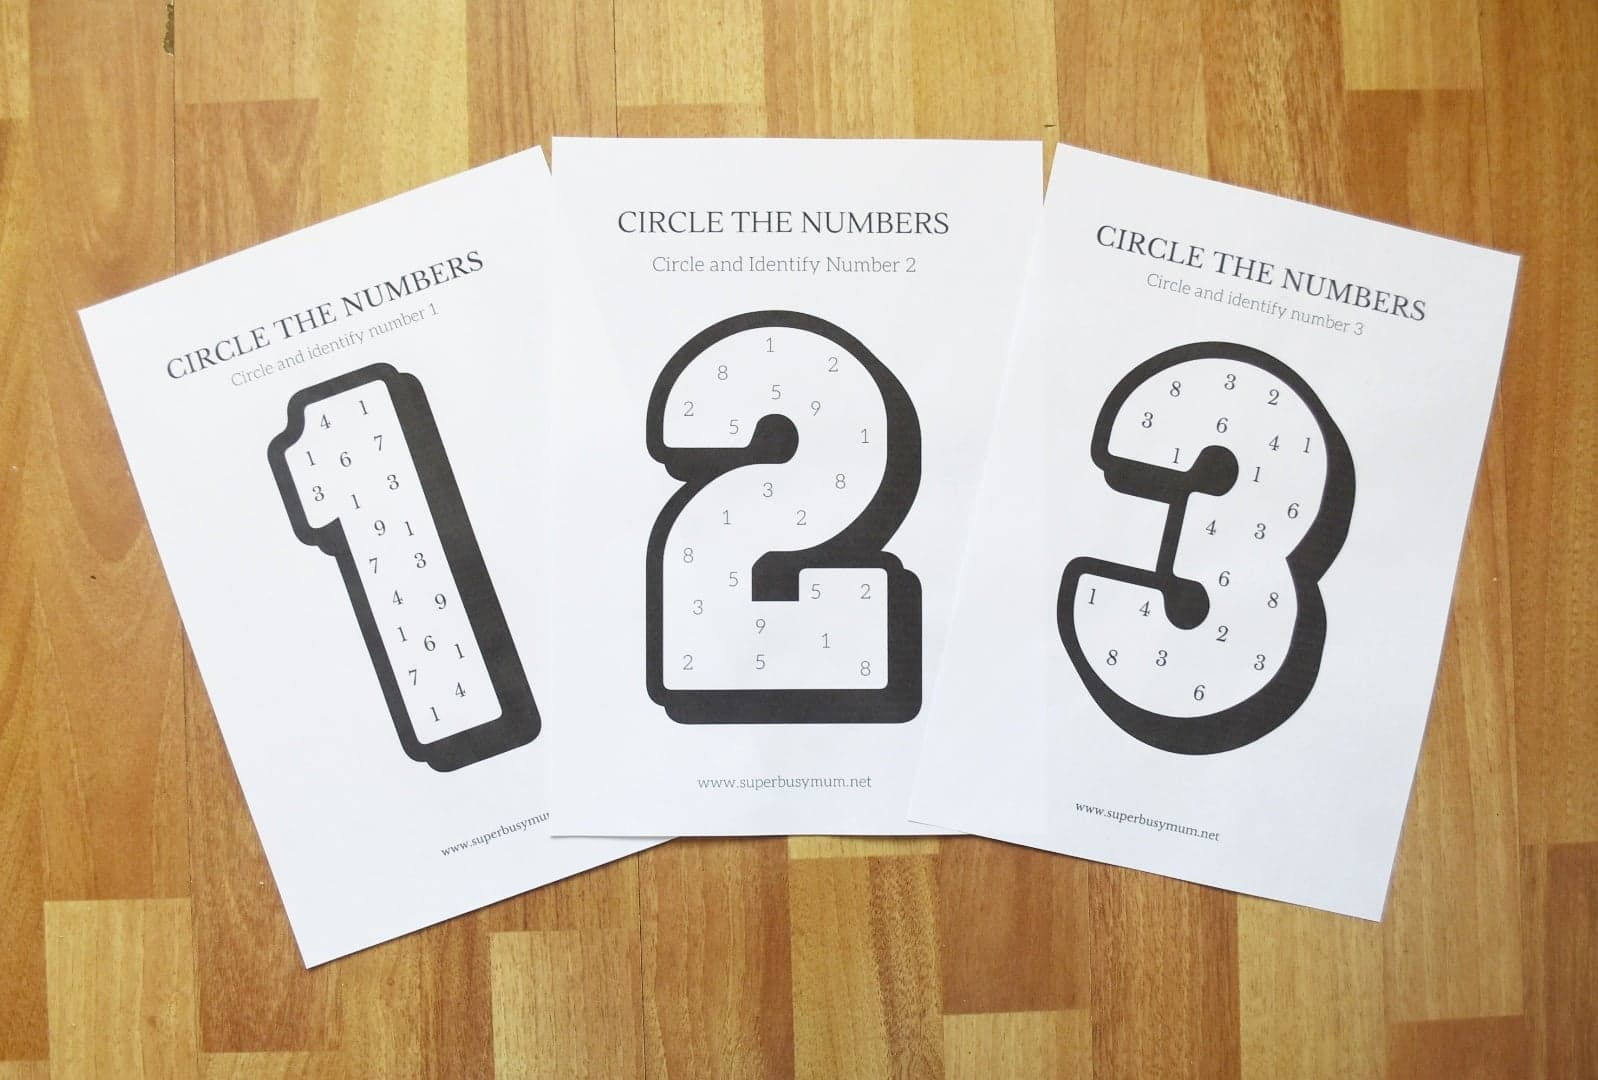 Number Recognition Worksheets Free Printables - Super Busy Mum